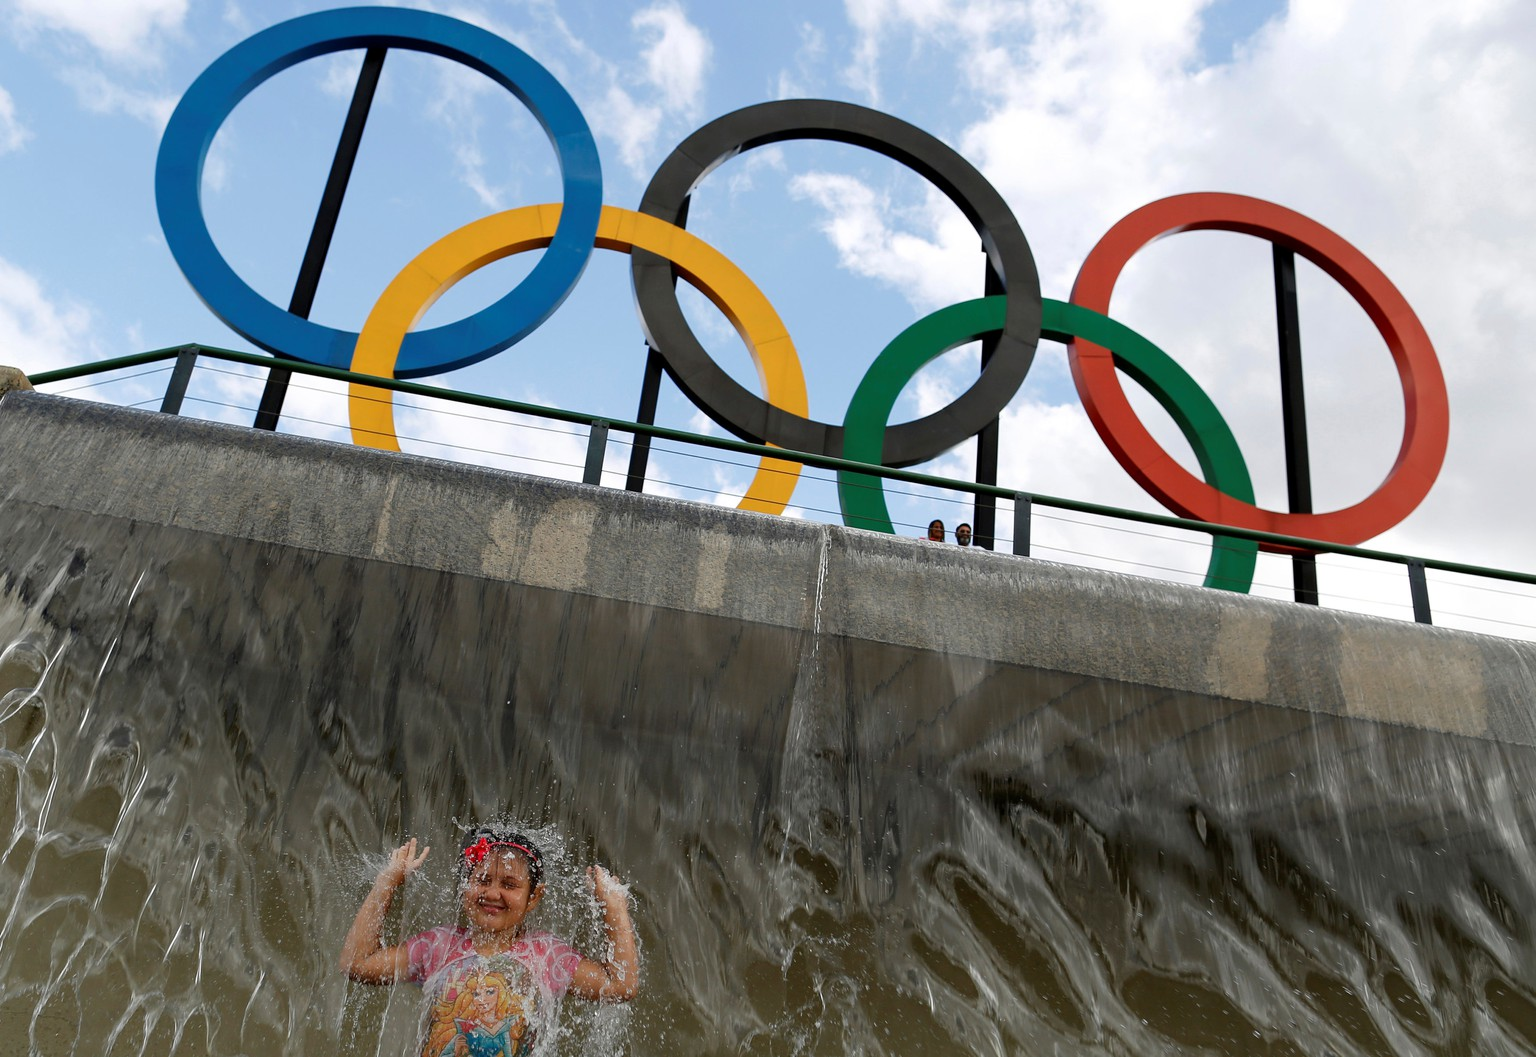 A child plays in water near Olympic rings placed at Madureira Park ahead of the Rio 2016 Olympic Games in Rio de Janeiro, Brazil, July 17, 2016. REUTERS/Bruno Kelly